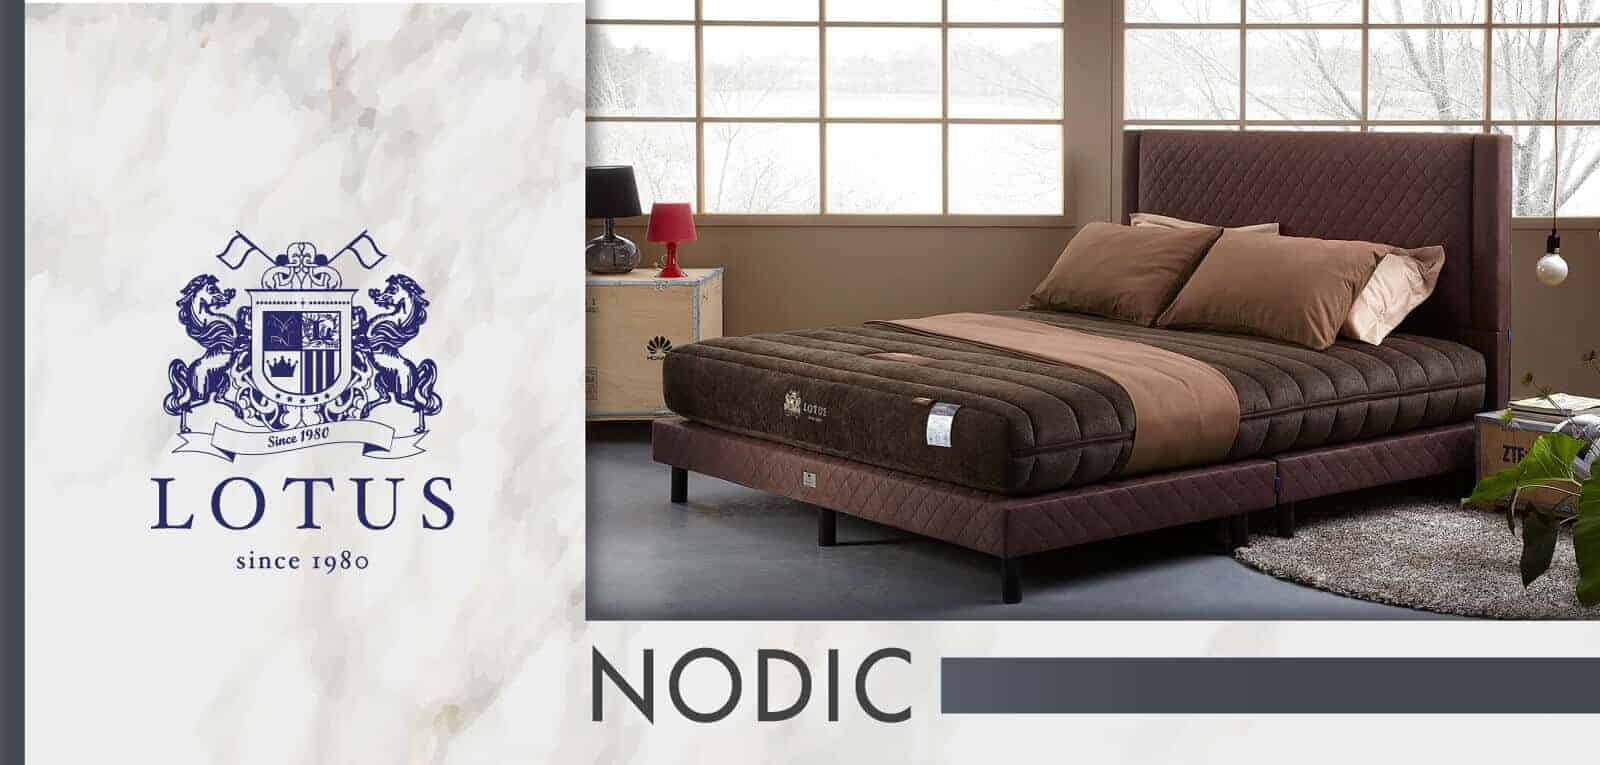 Lotus Mattress - Nodic 10